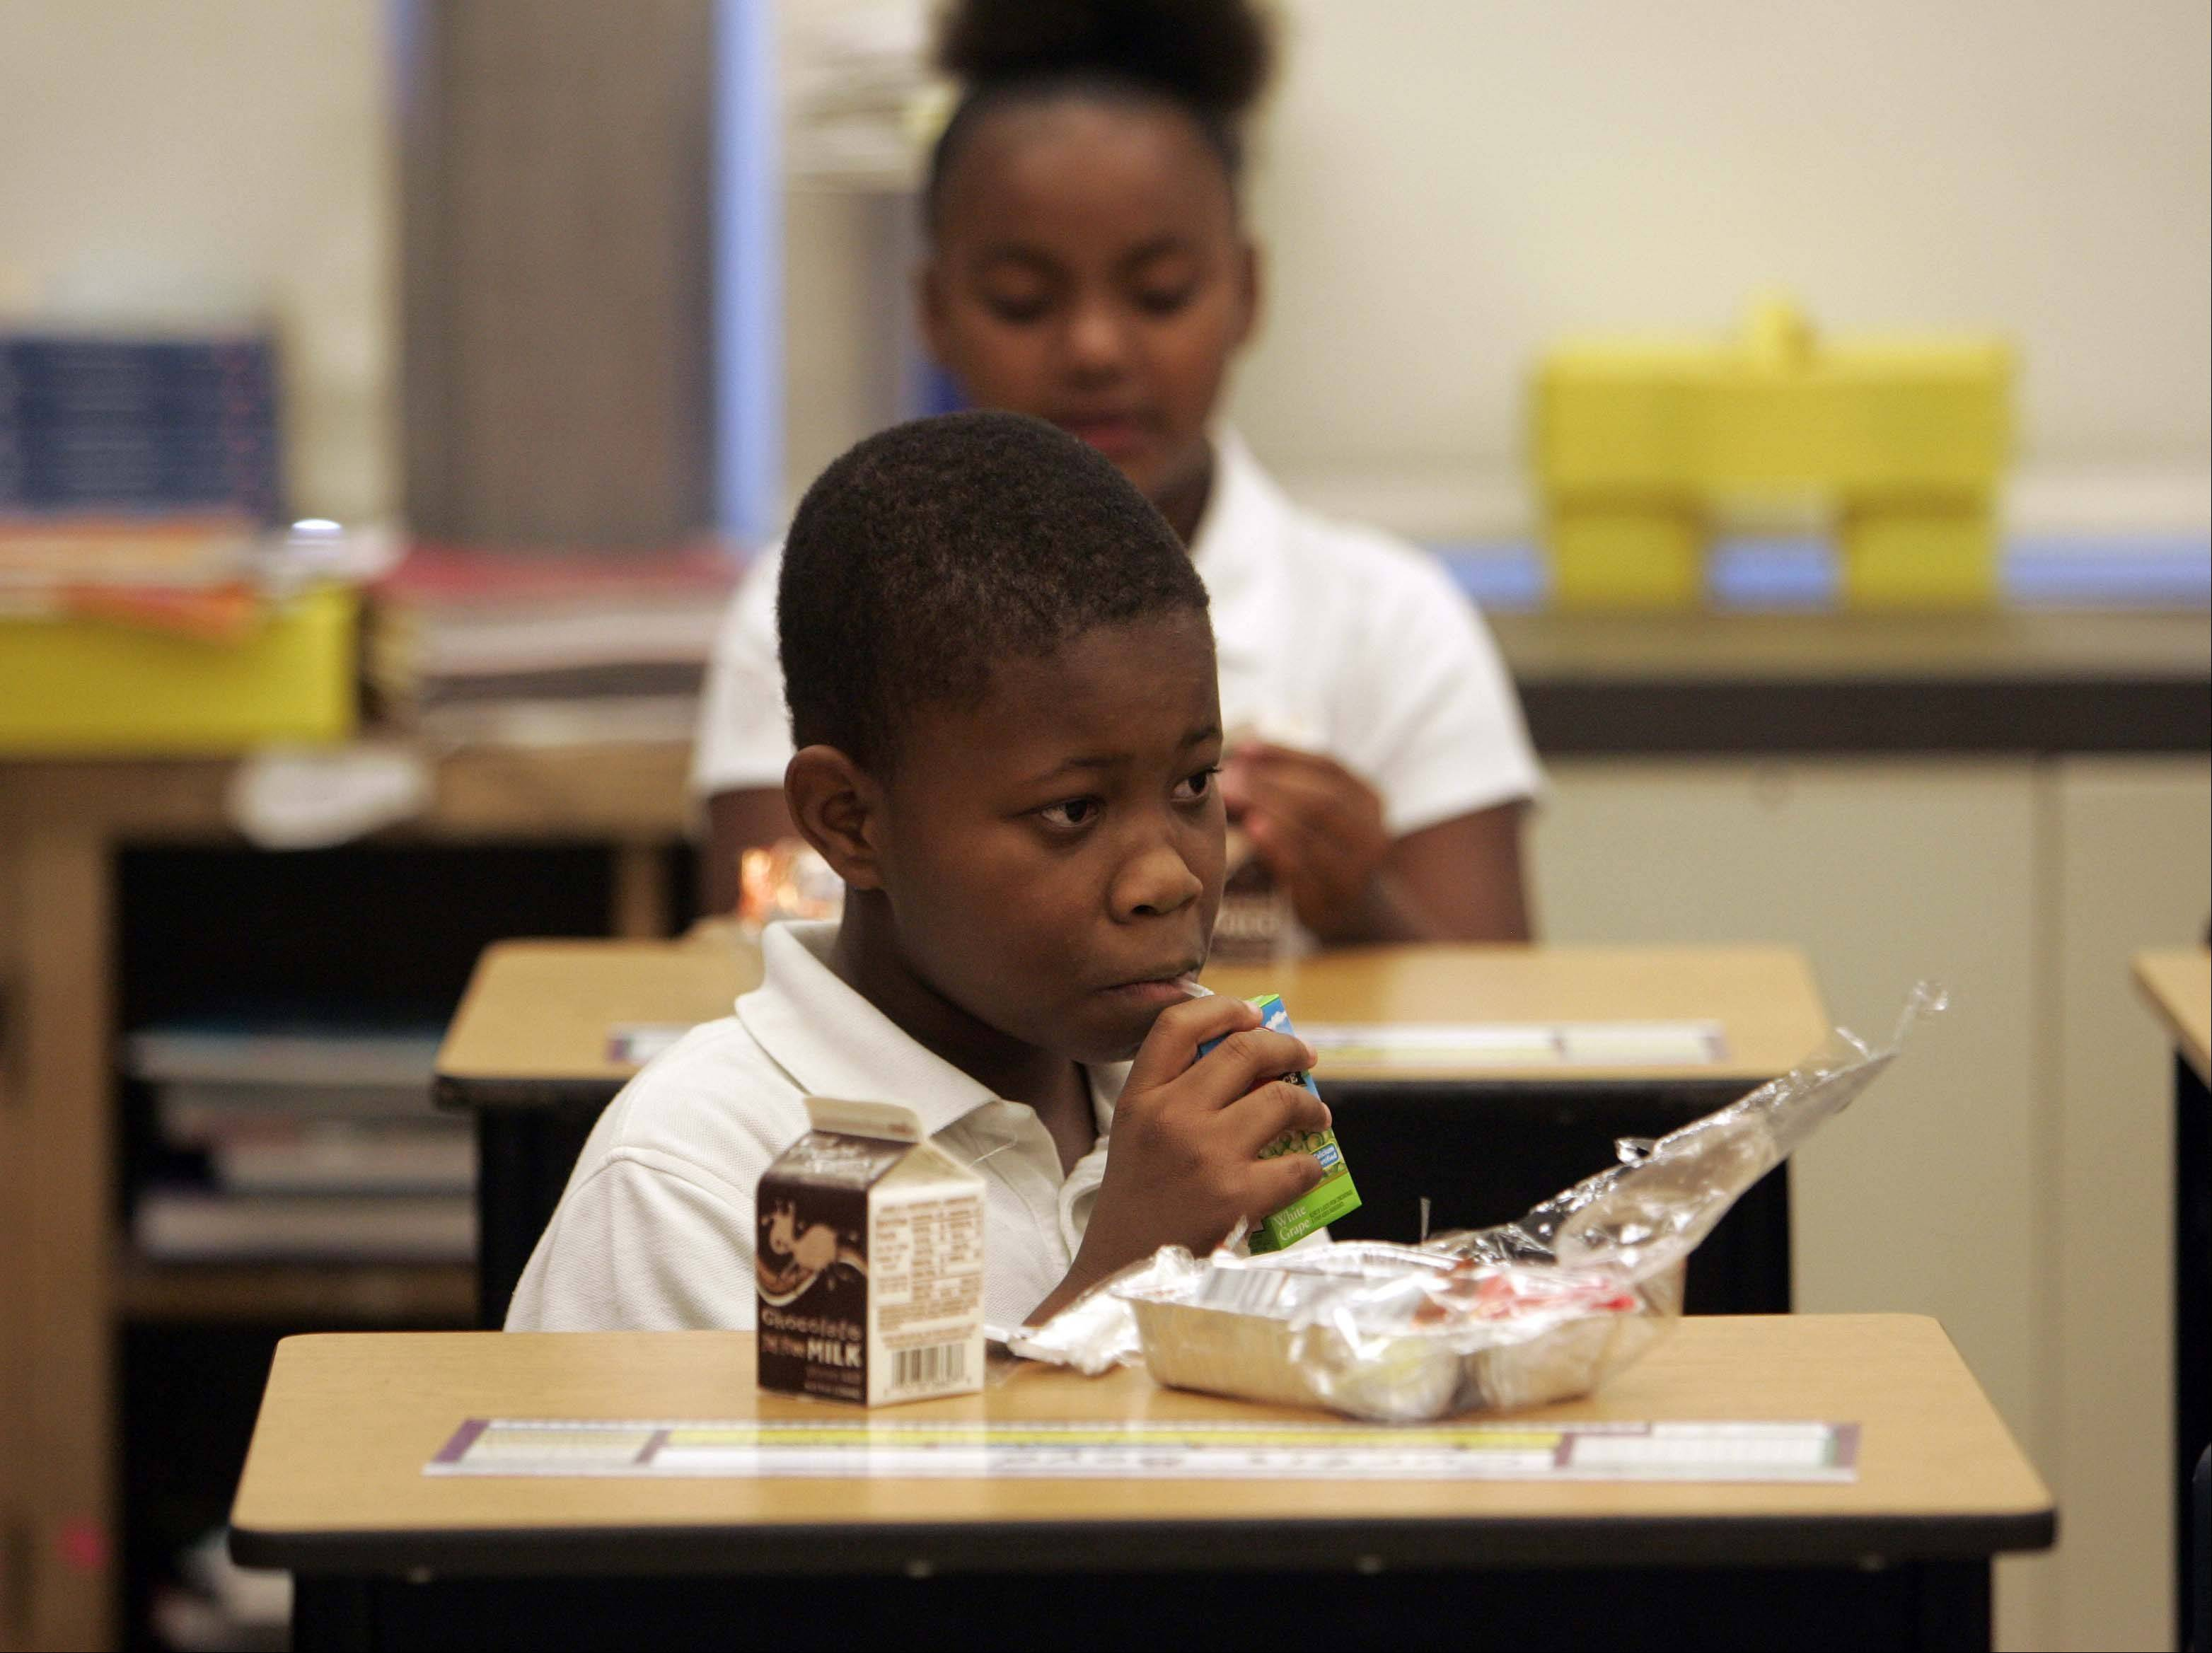 Curtis Byod in Michael Preston's fifth-grade class finishes his breakfast Wednesday during the first day of school at Gifford Elementary School in Elgin. Harriet Gifford is one of 10 schools in Elgin Area School District U-46 that now offer a free breakfast to each child every day.